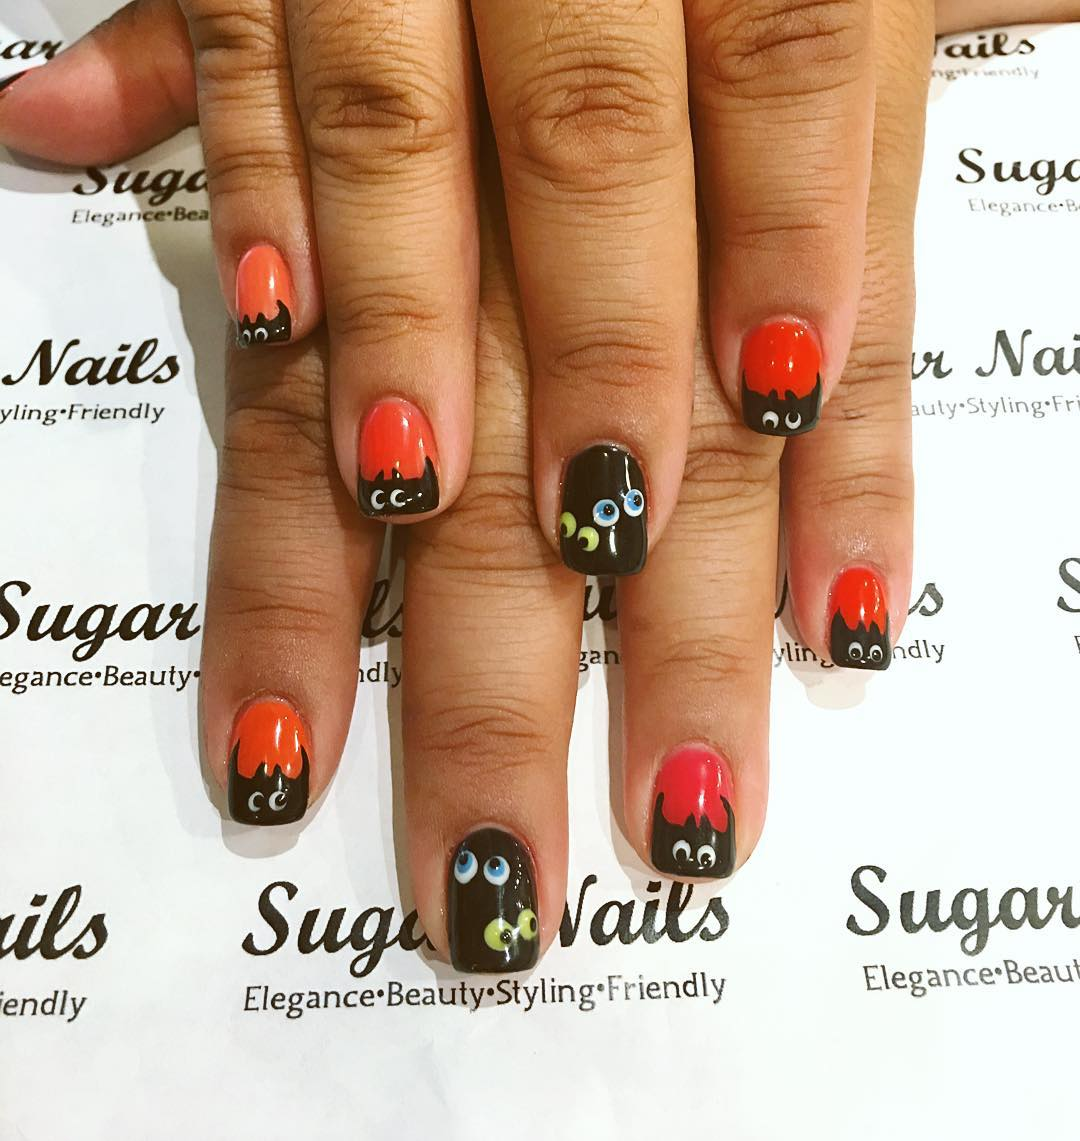 stylish and funny acrylic nail design idea